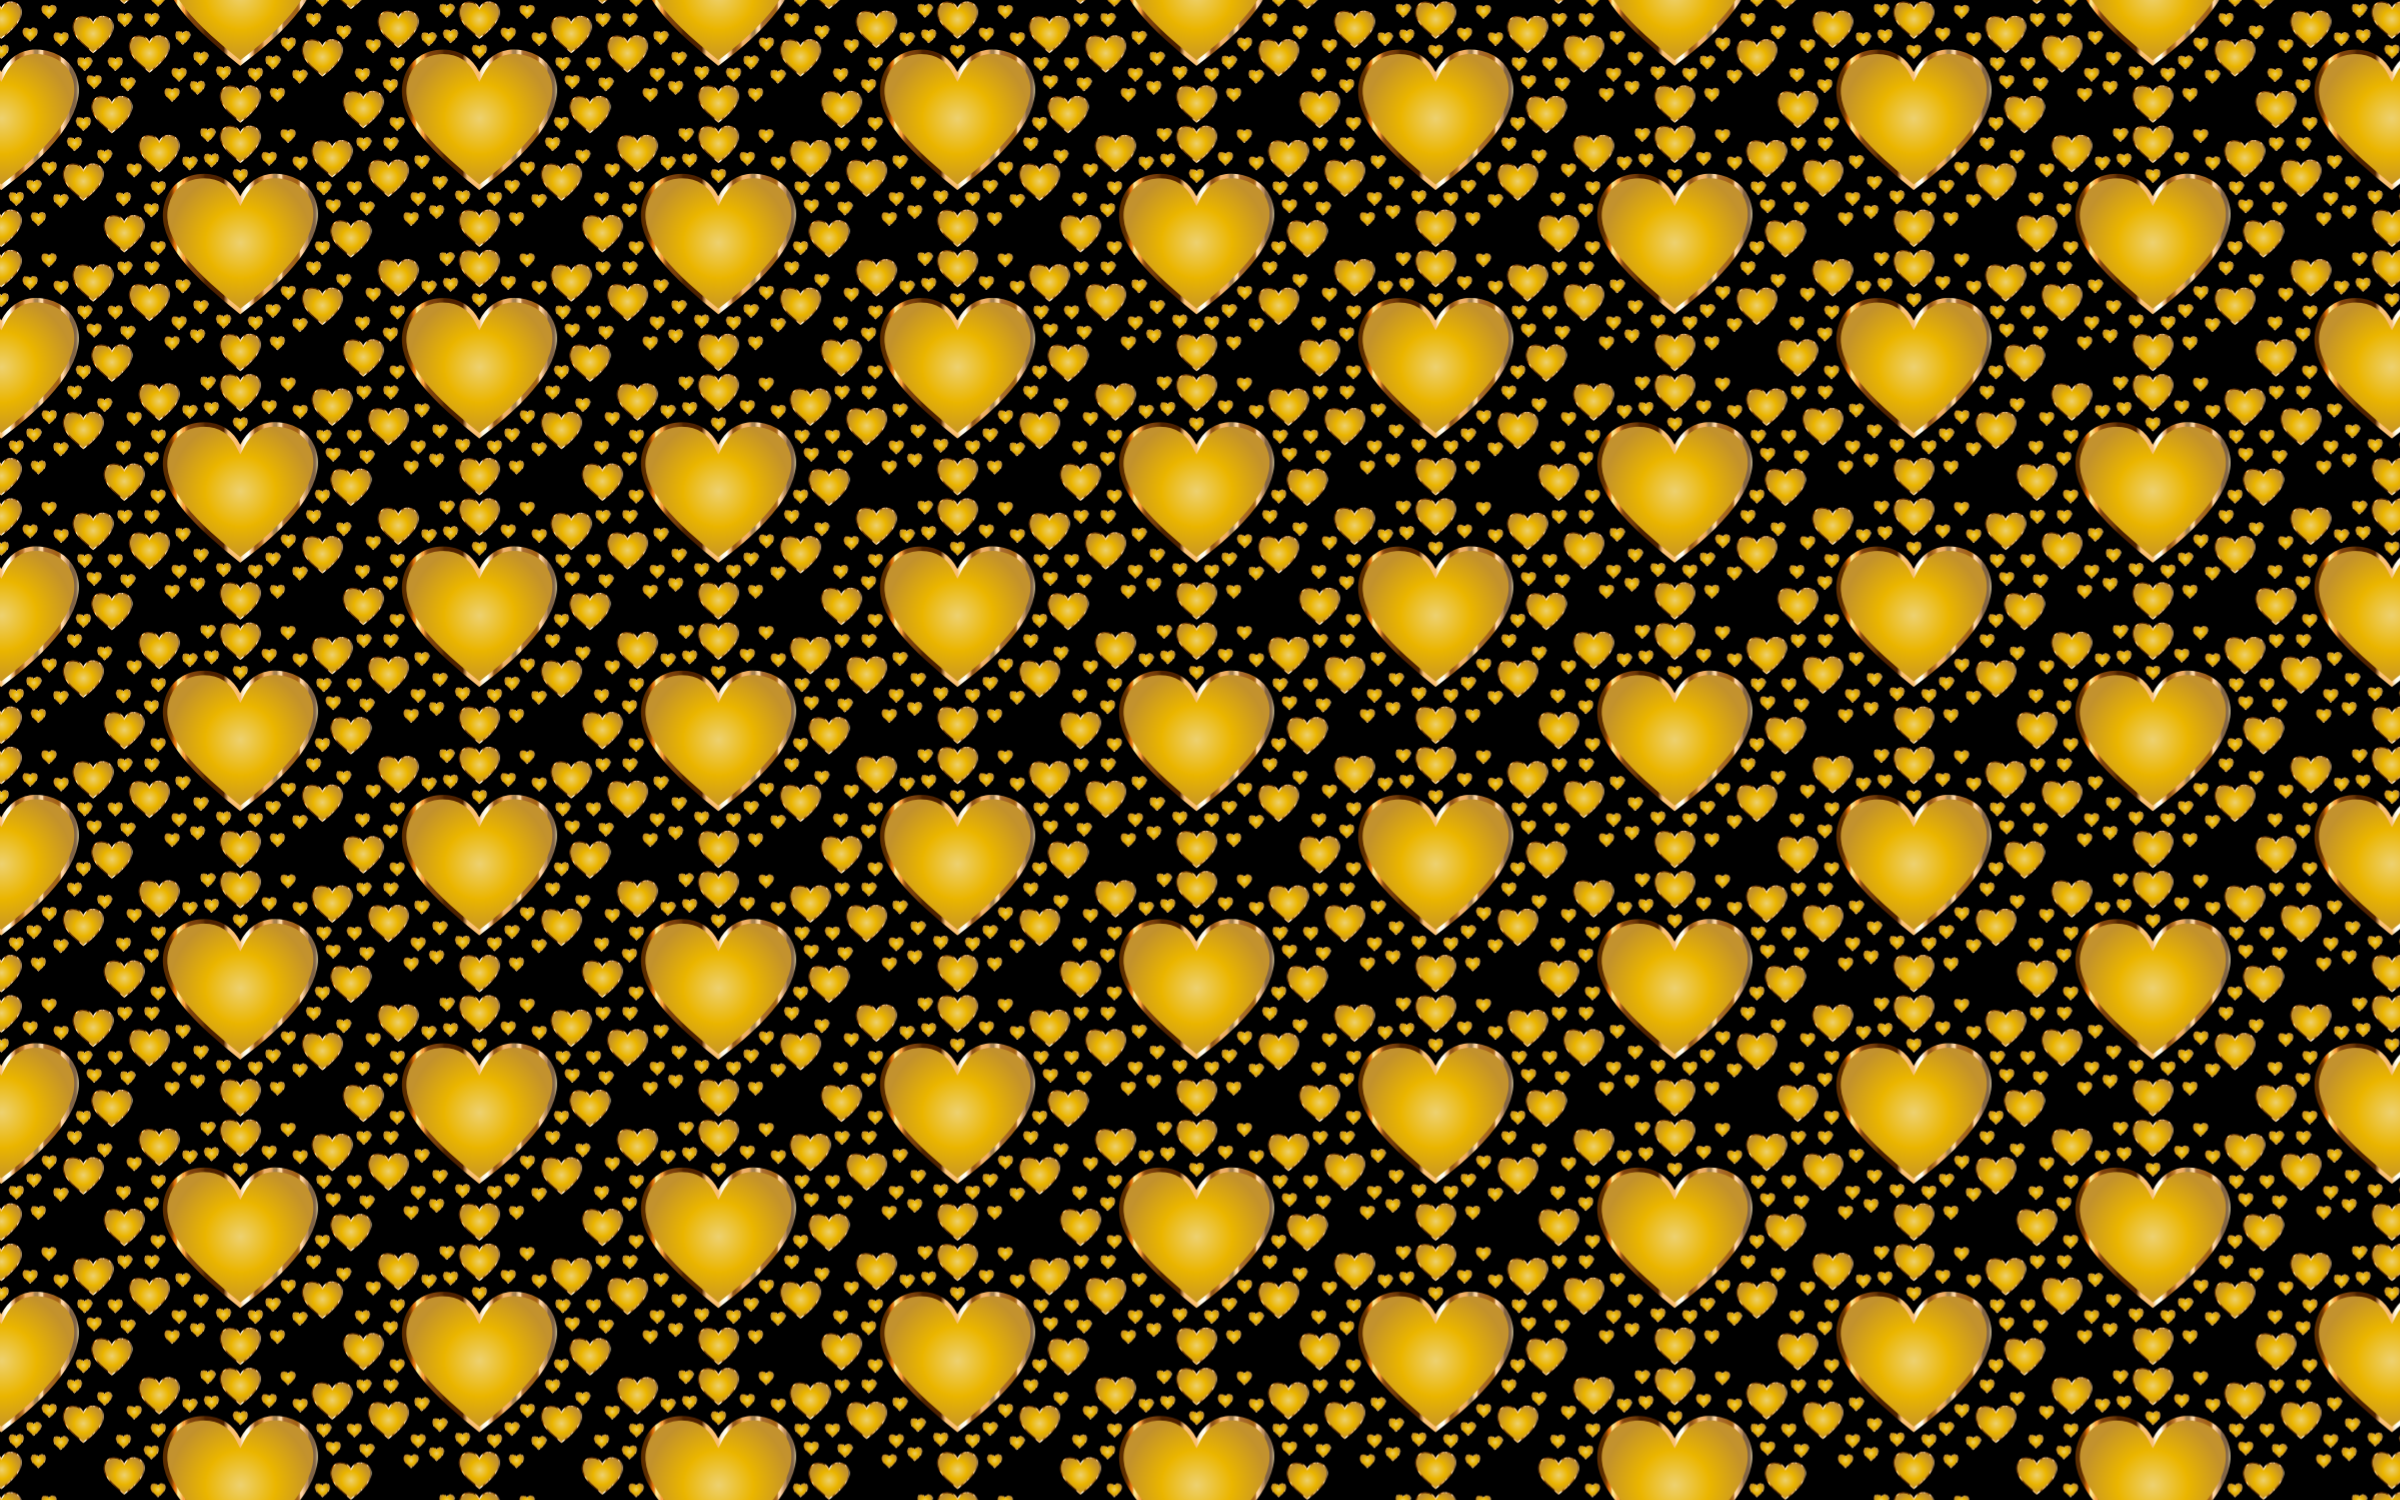 Seamless Gold Heart Pattern 4 by GDJ